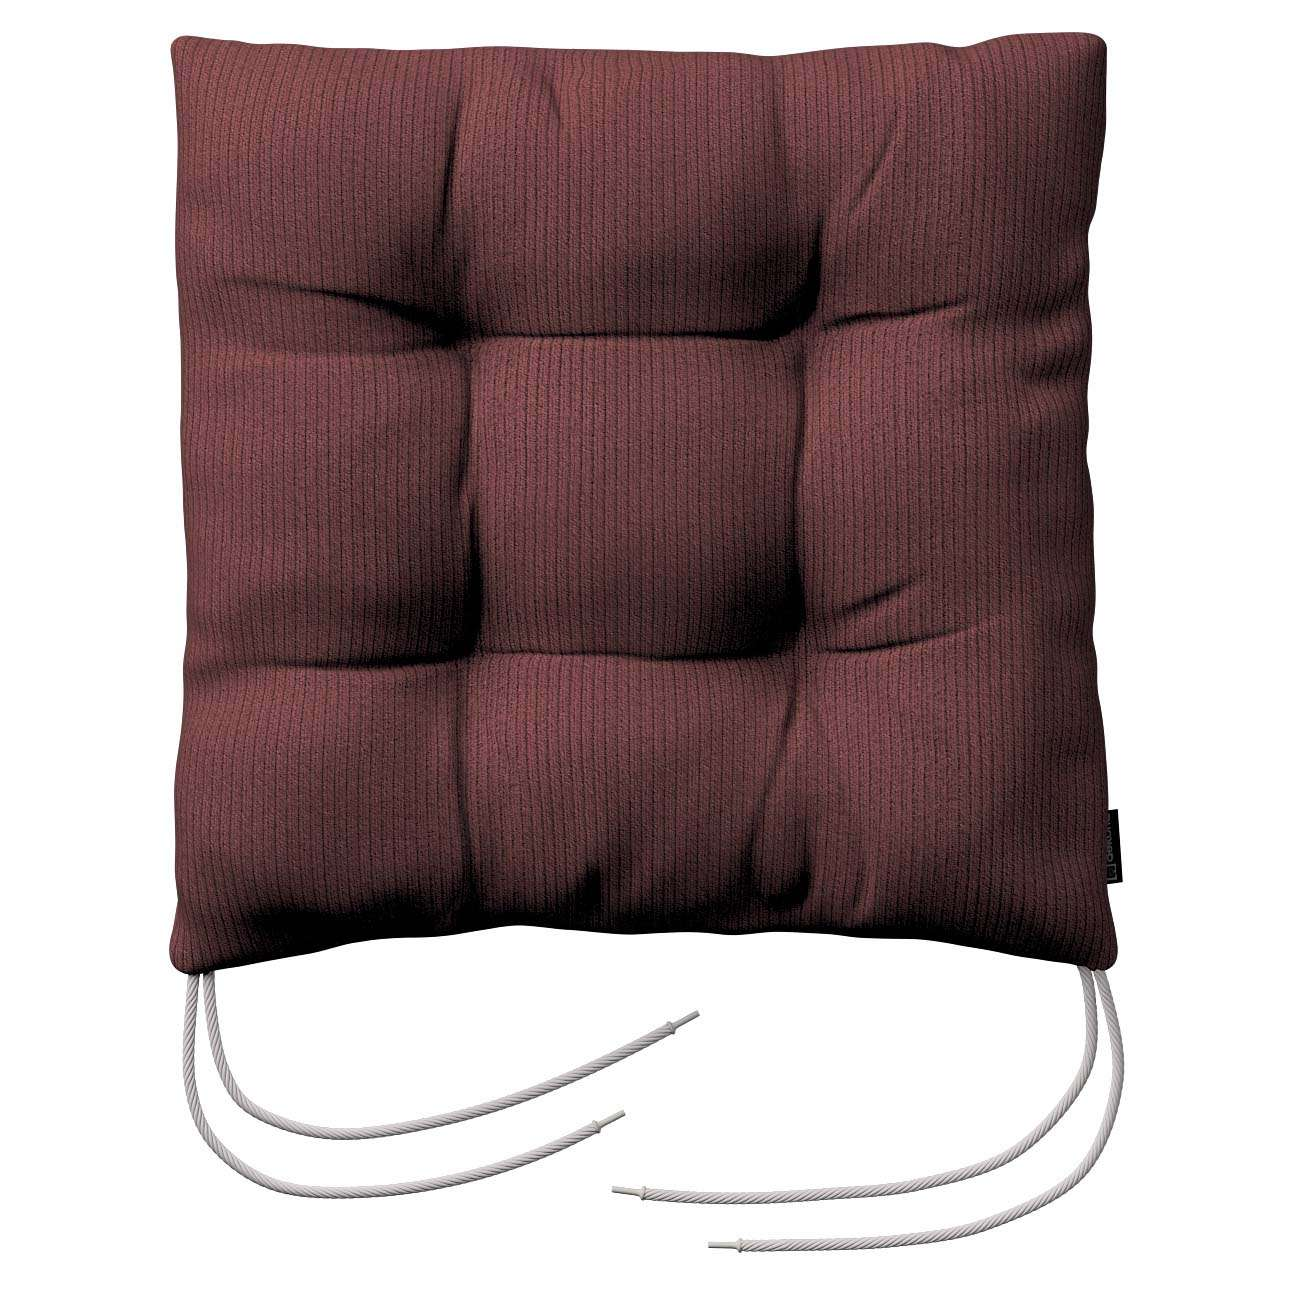 Jacek seat pad with ties 40 x 40 x 8 cm (16 x 16 x 3 inch) in collection Living, fabric: 103-56